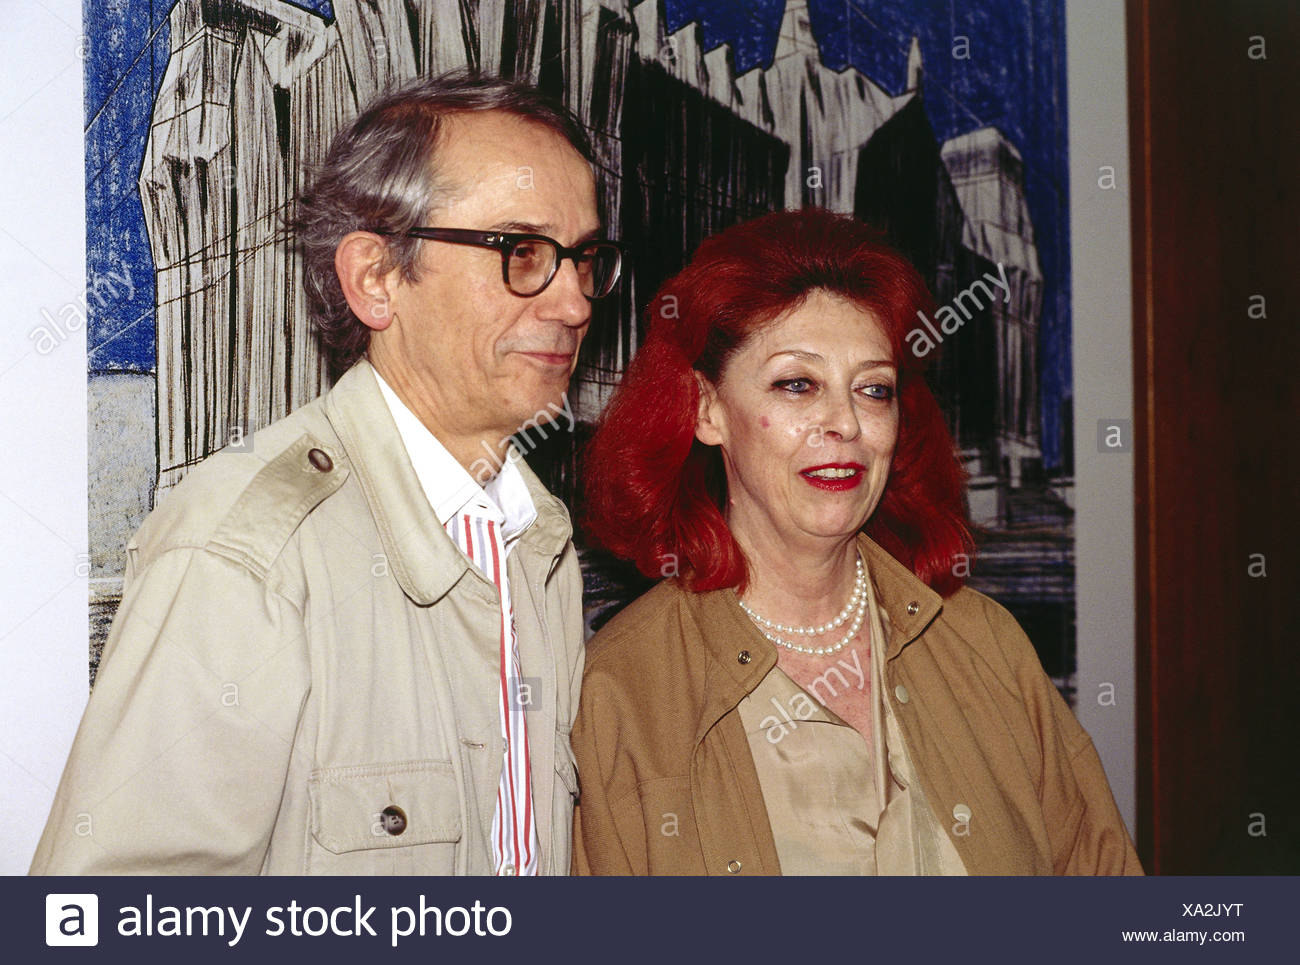 Christo, * 13.6.1935, Bulgarian artist, half length, with his wife Jeanne-Claude, project 'Covered Reichstag', panel discussion, Stockbild